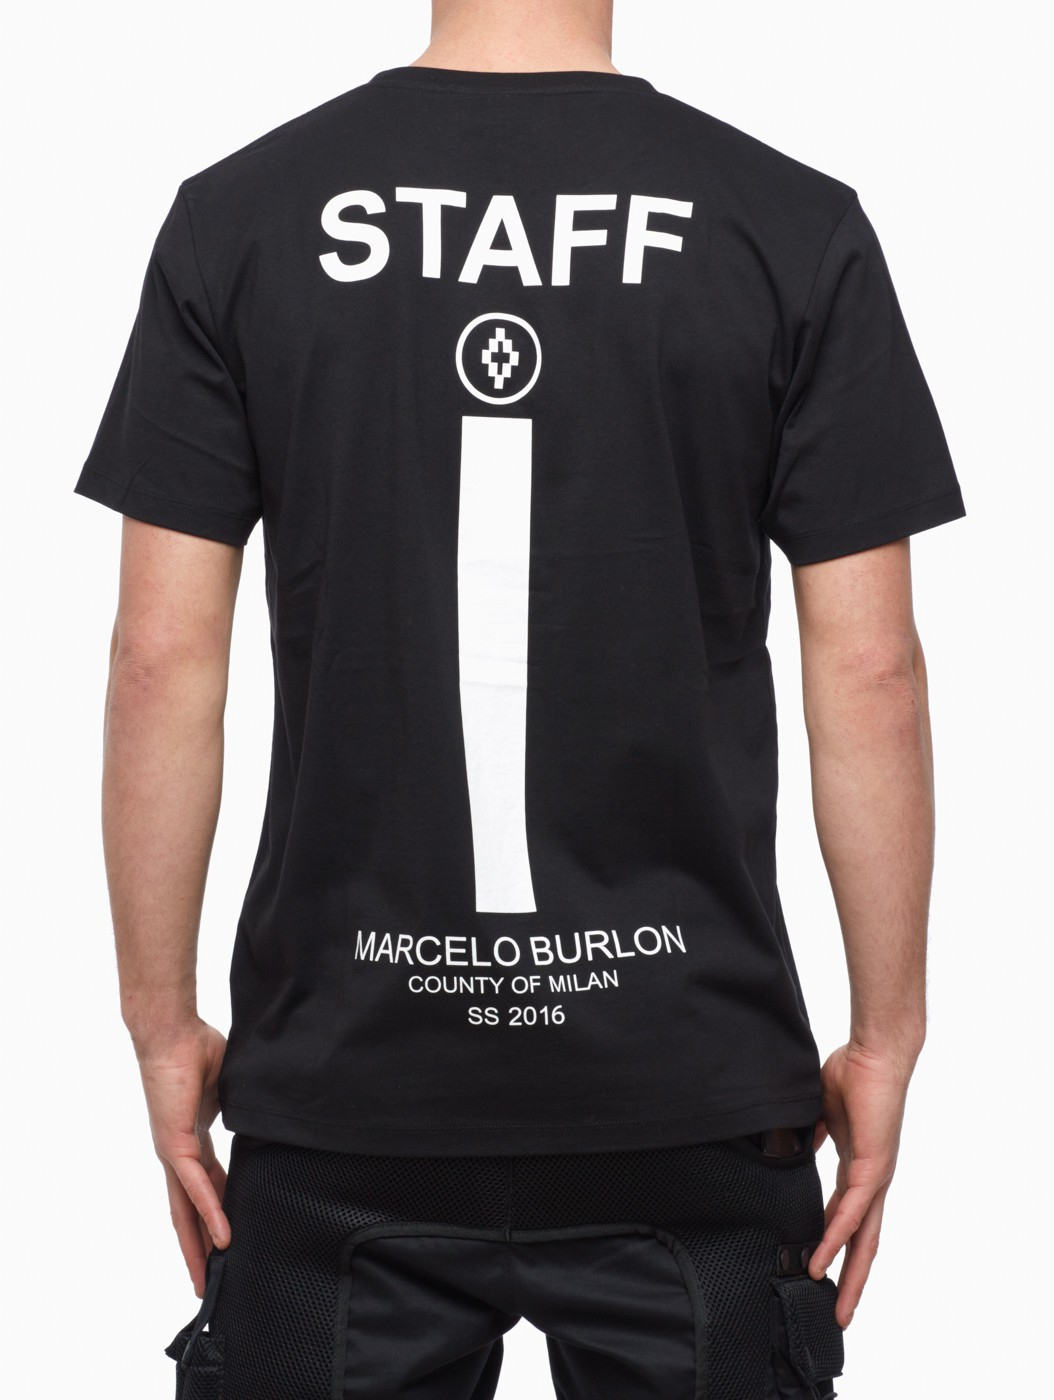 Lyst Marcelo Burlon Staff T Shirt In Black For Men